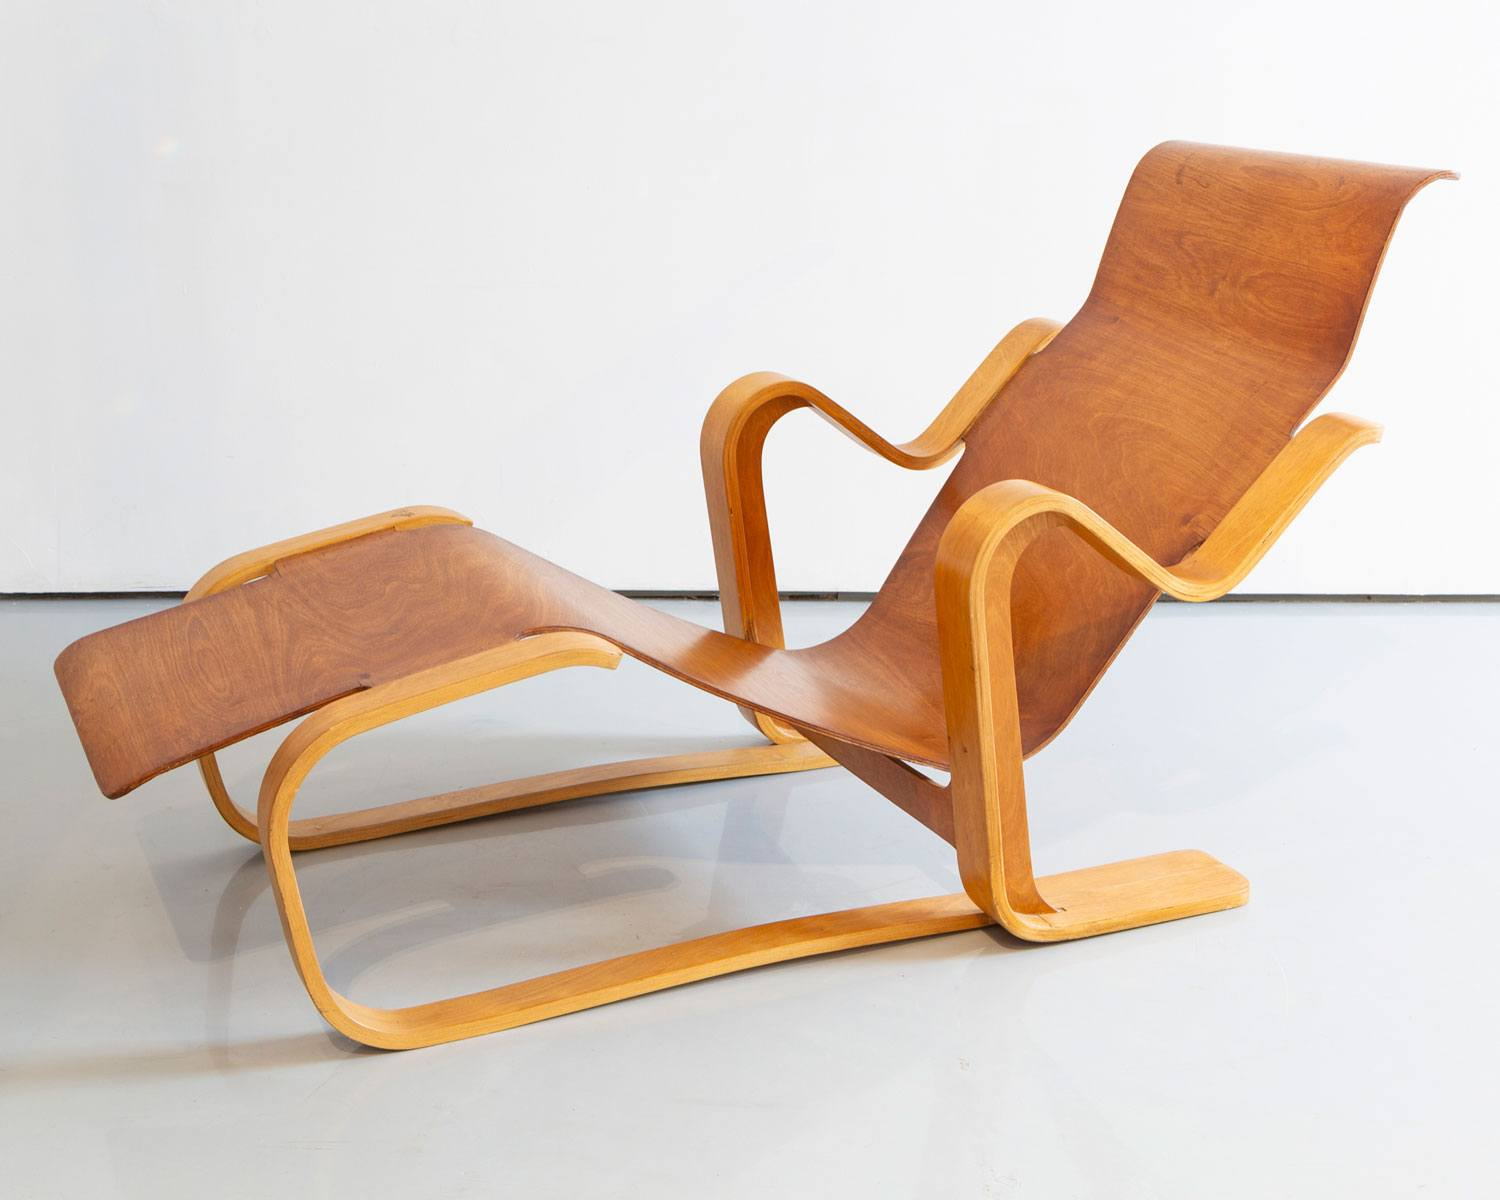 A long chair designed by Marcel Breuer.